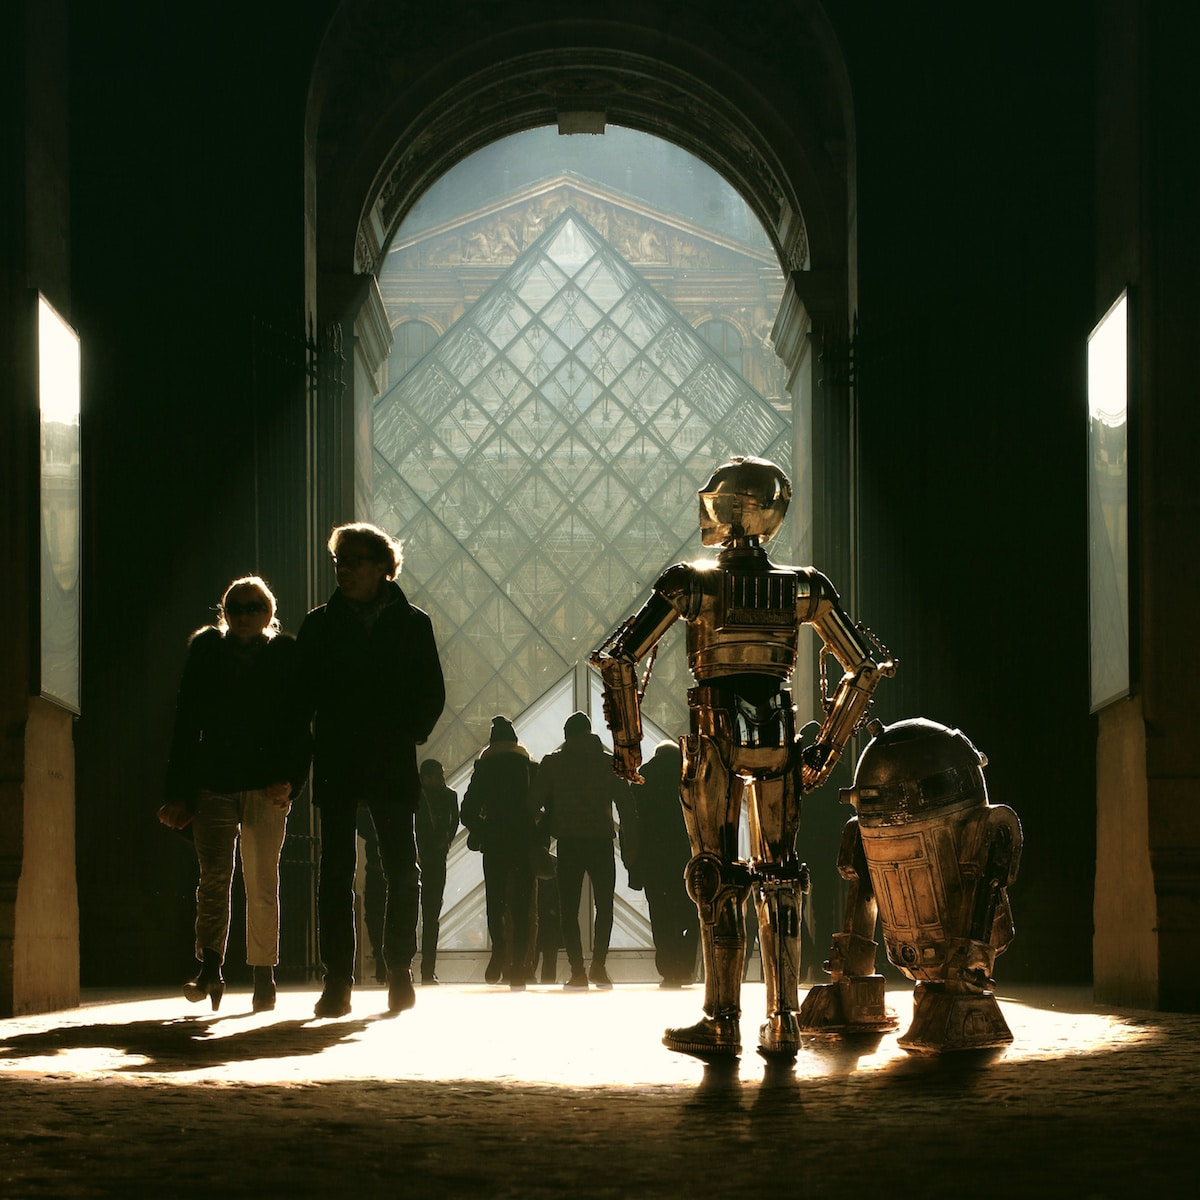 Star Wars in Real Life Imagined by Photographer Laurent Pons